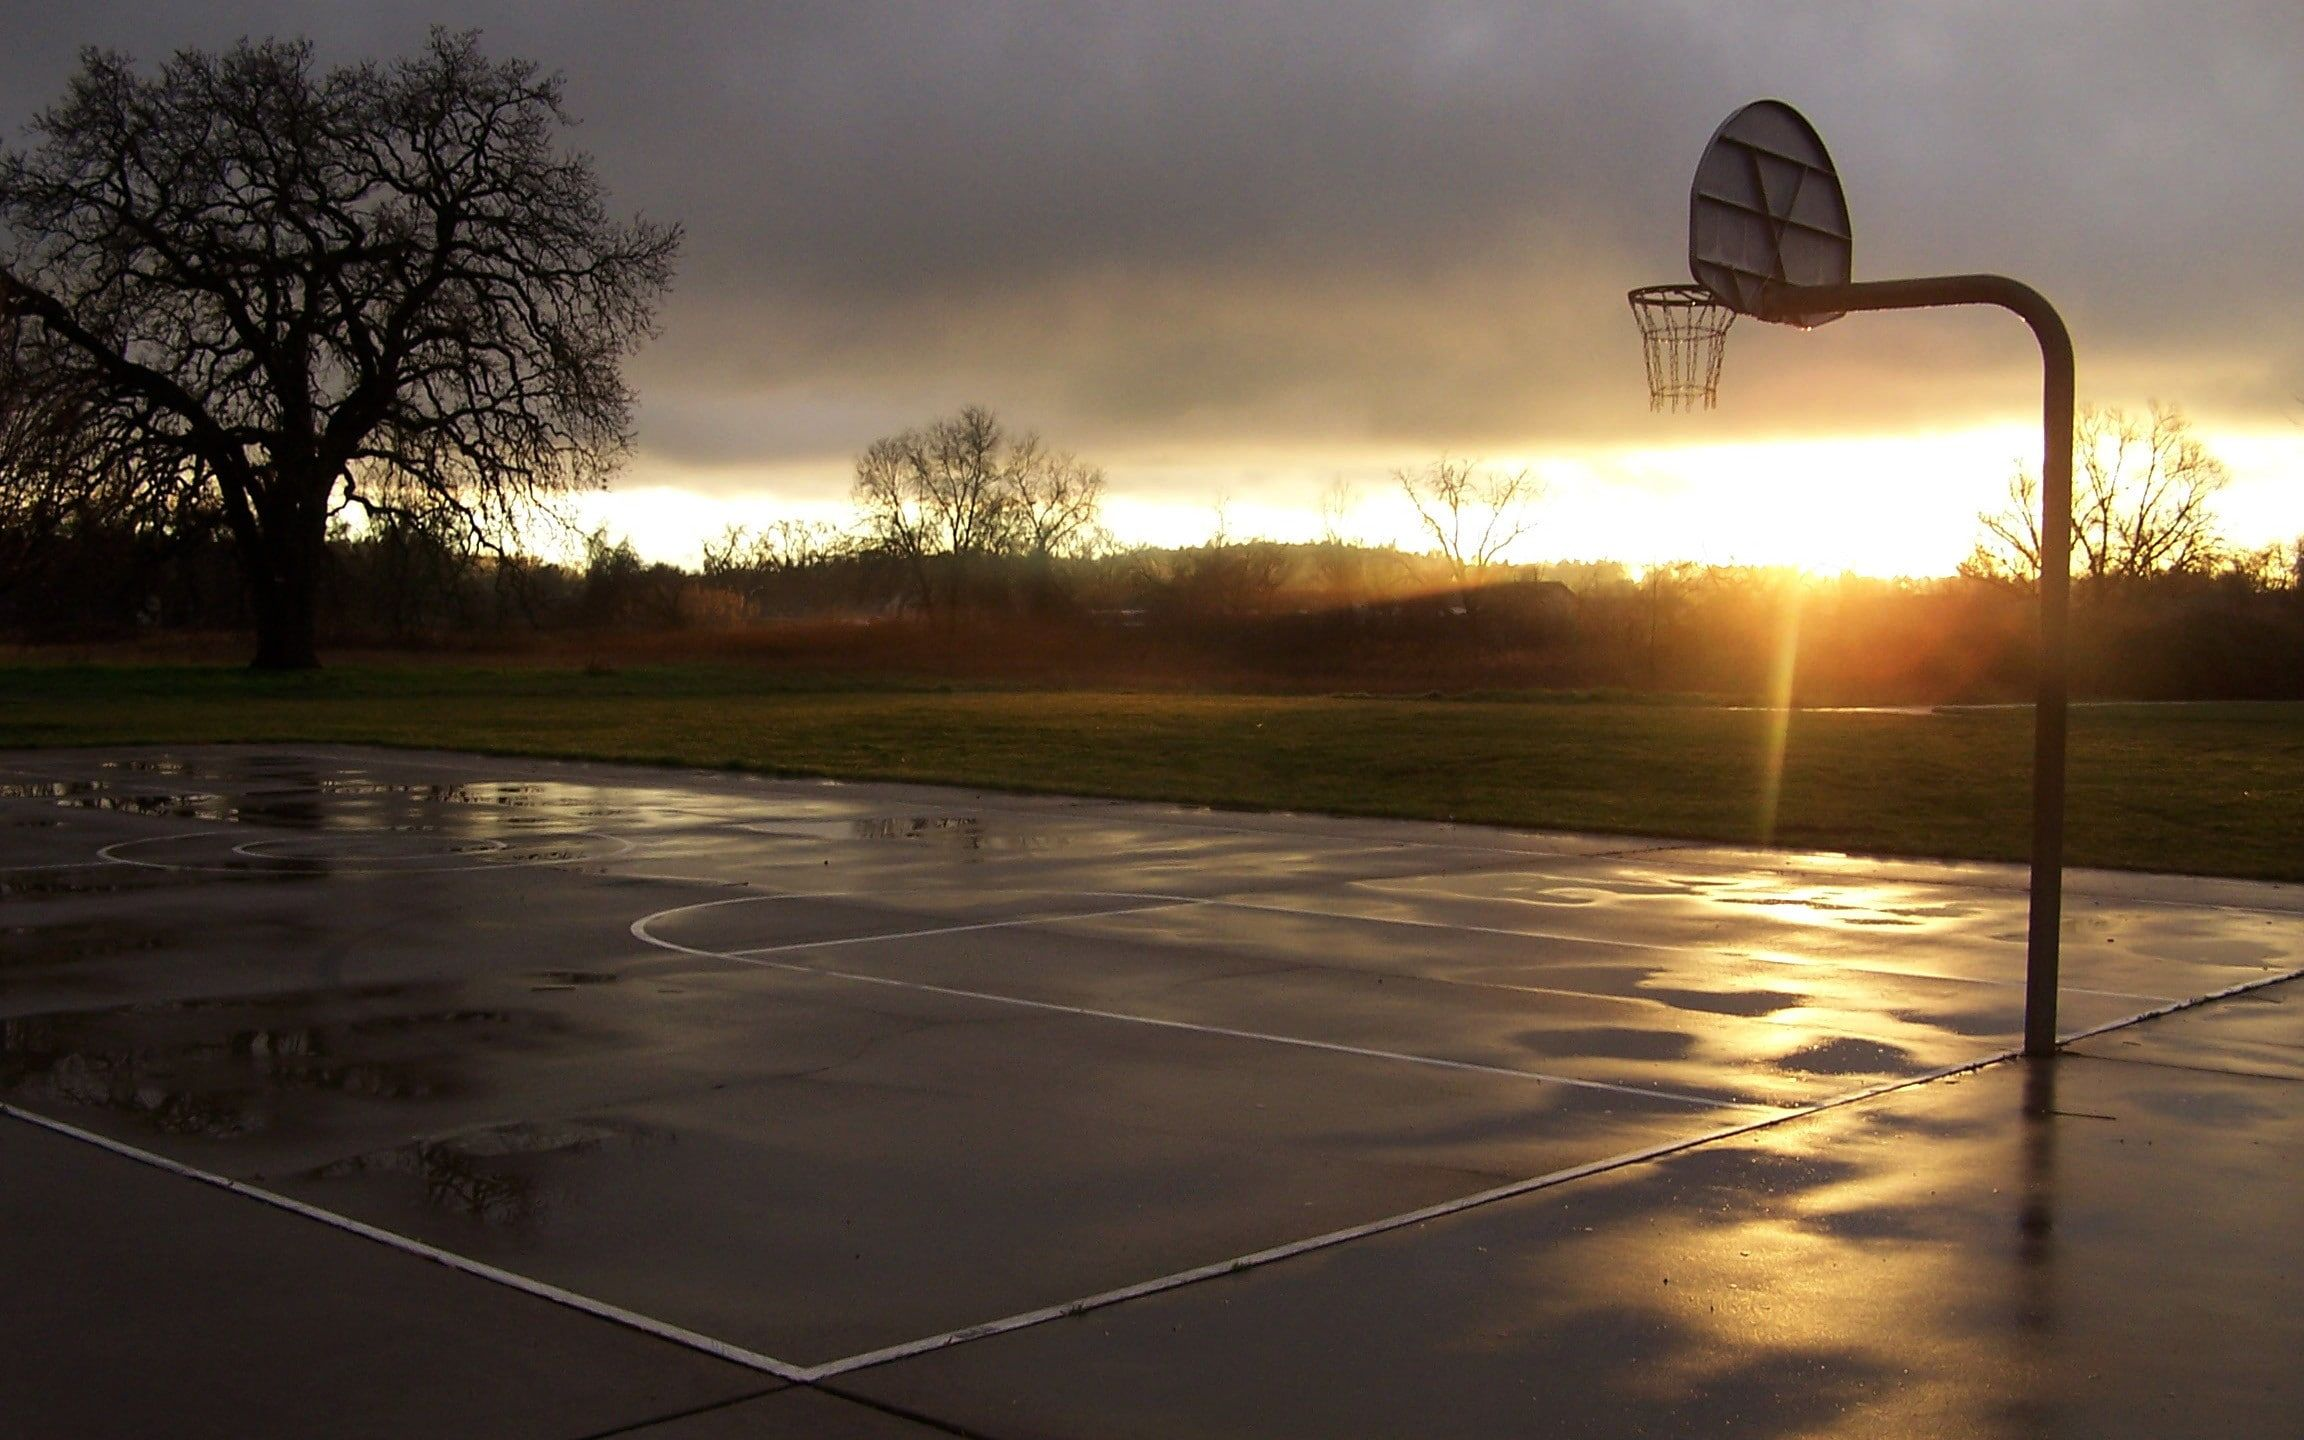 Basketball Sport Sports Basketball Court Sunset Hoop Wet 1080p Wallpaper Hdwallpaper Des In 2020 Street Basketball Basketball Background Basketball Wallpaper